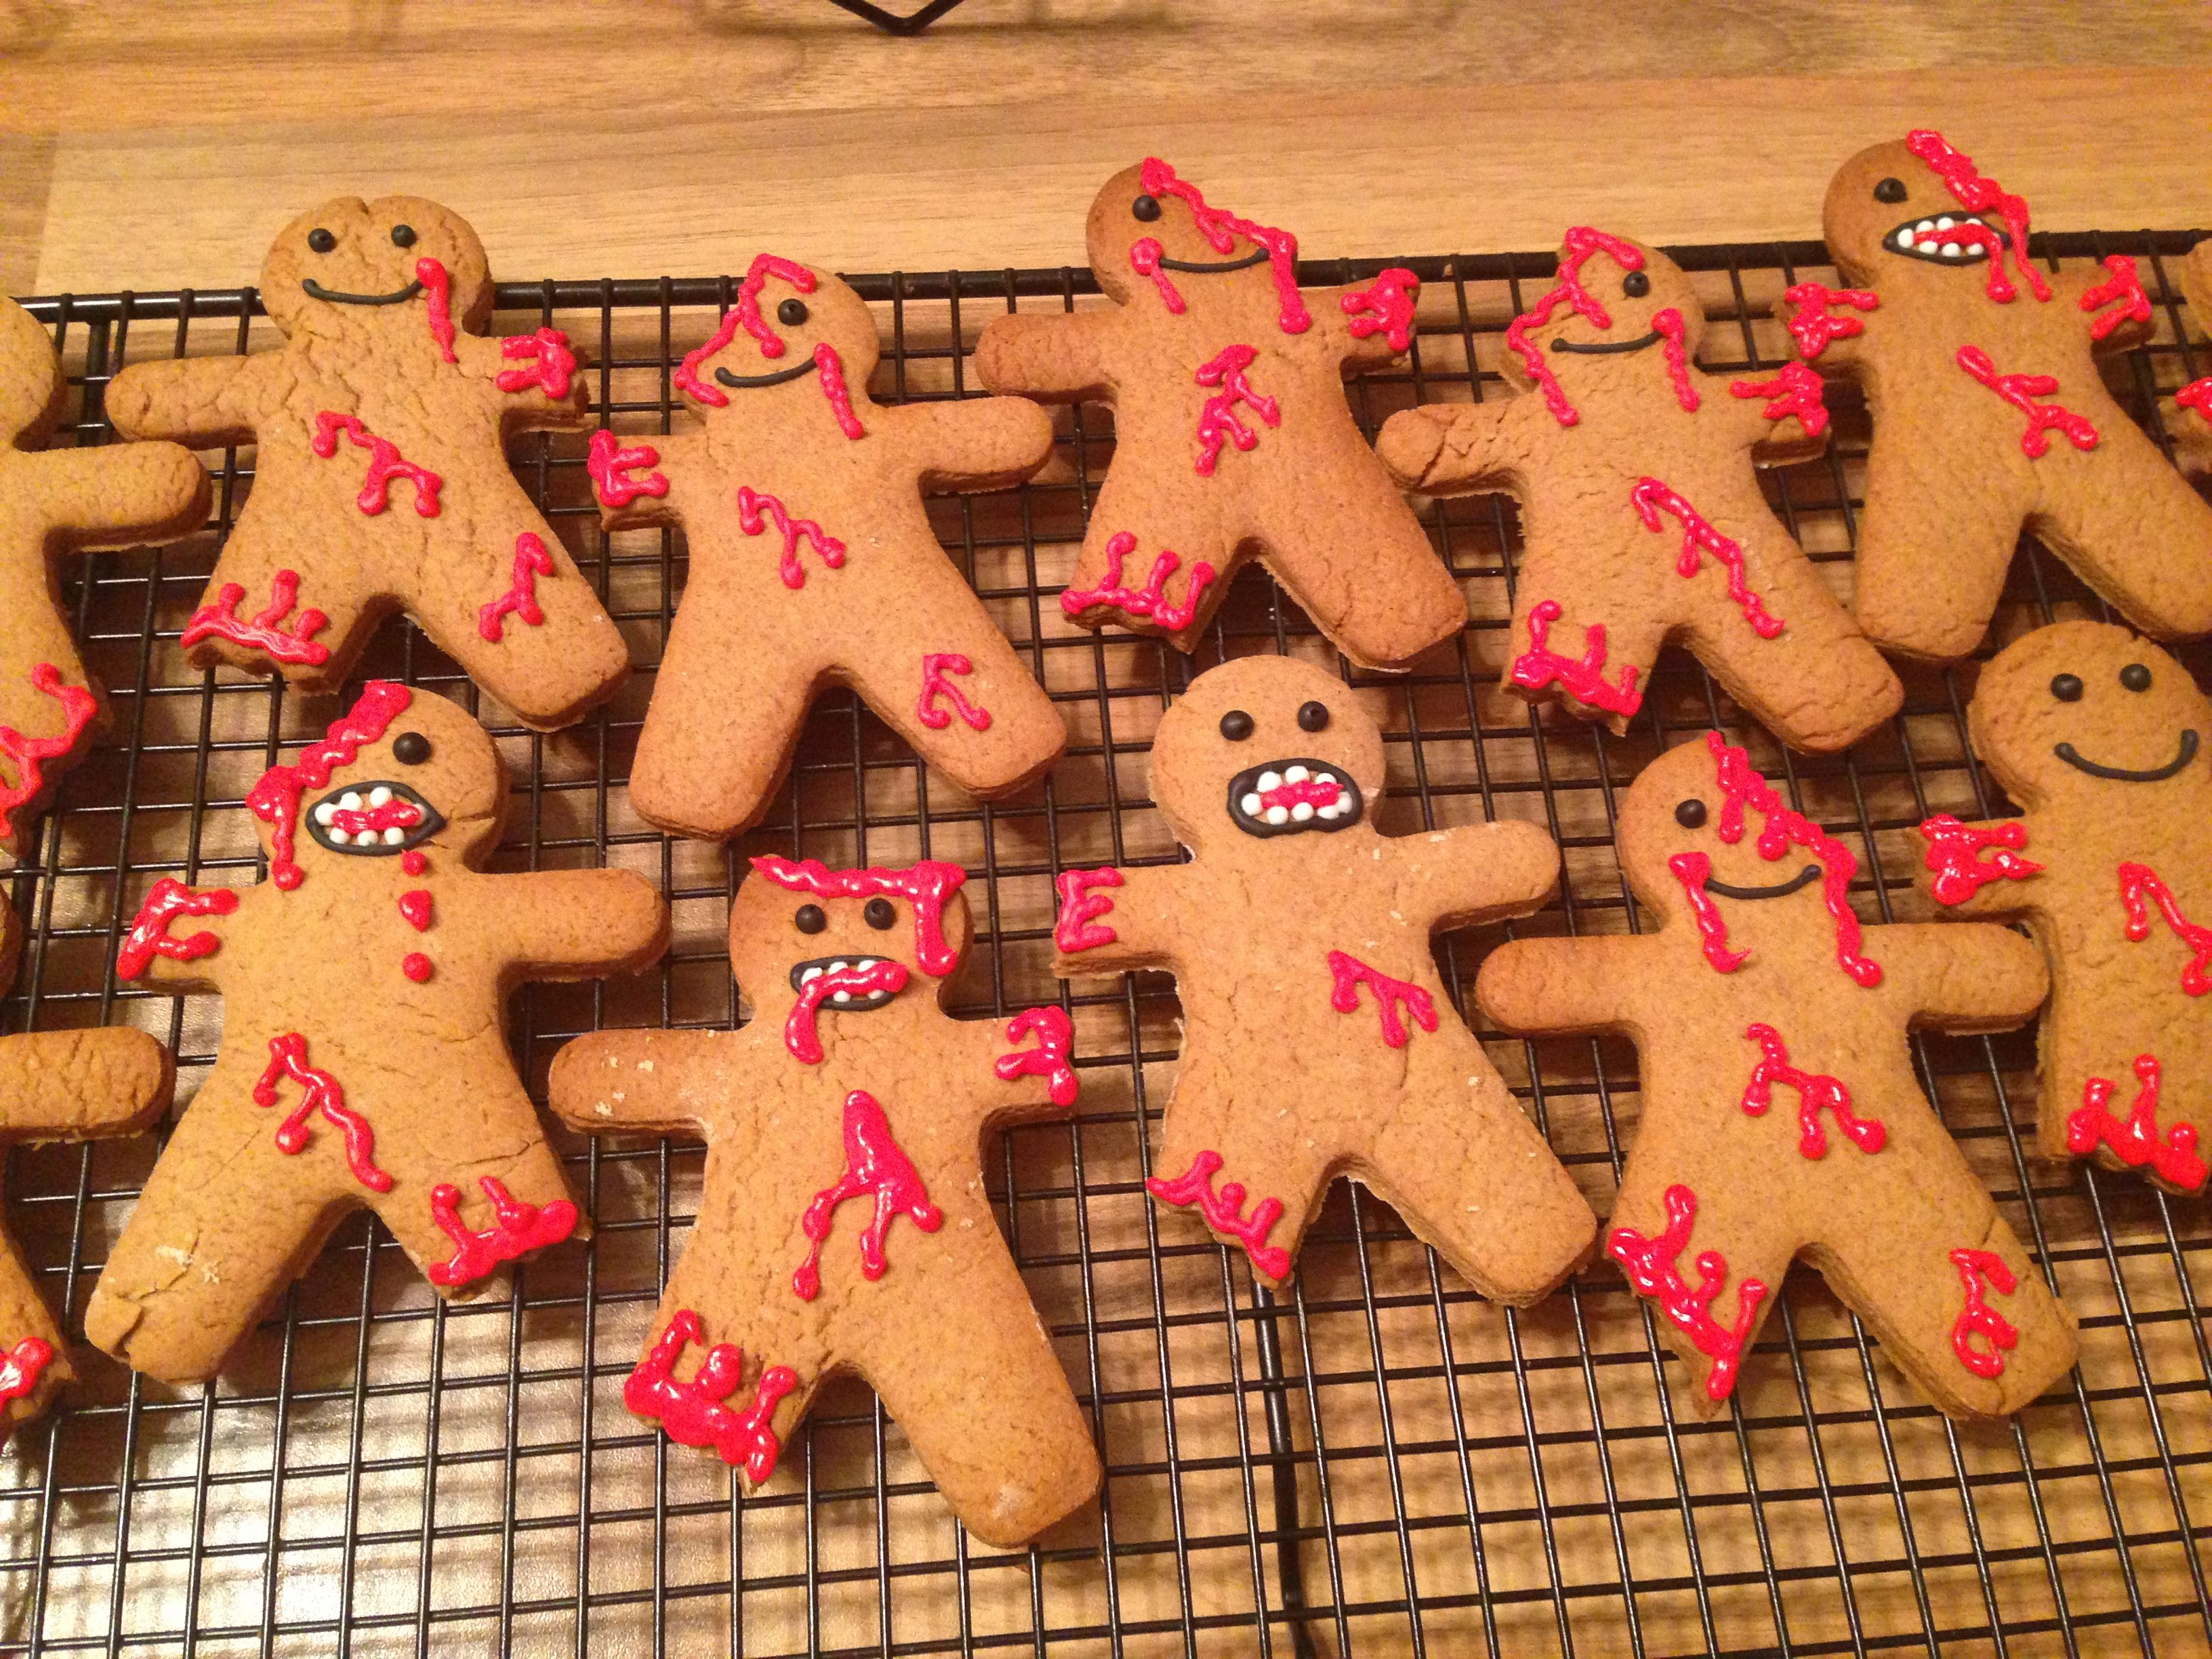 Gingerbread zombies for school Halloween bake sale #bakesaleideas